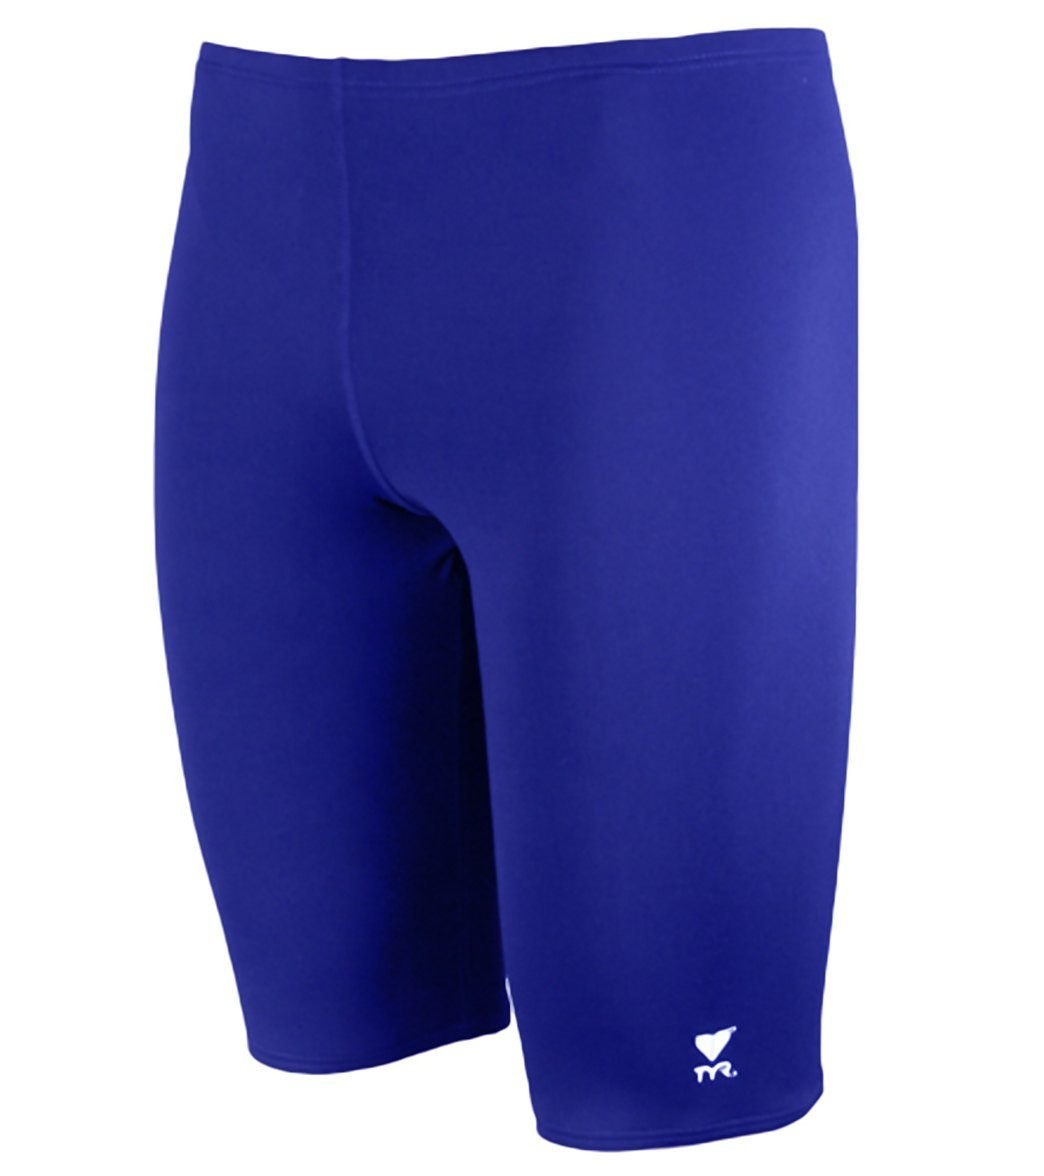 TYR Royal Durafast Elite Solid Jammer with Screenprinted Logo